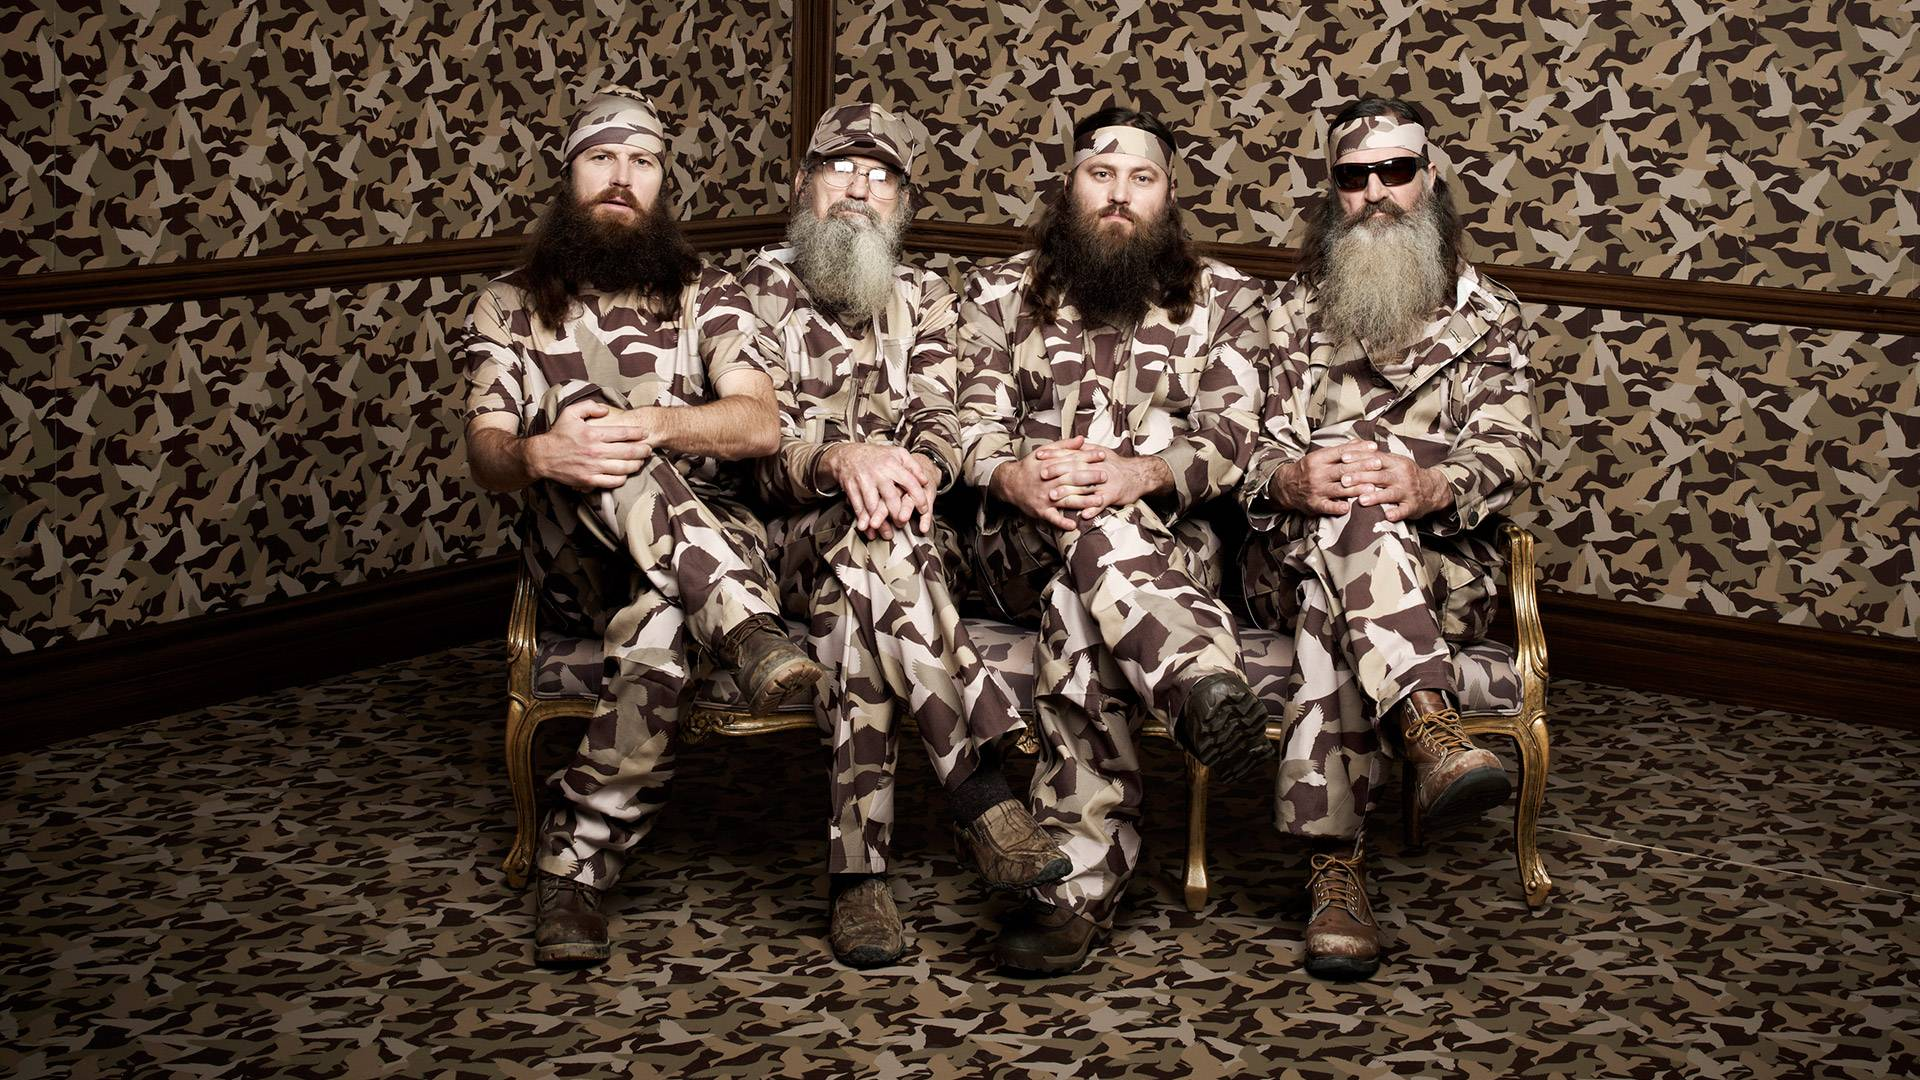 Duck Dynasty Hd Wallpaper Background Image 1920x1080